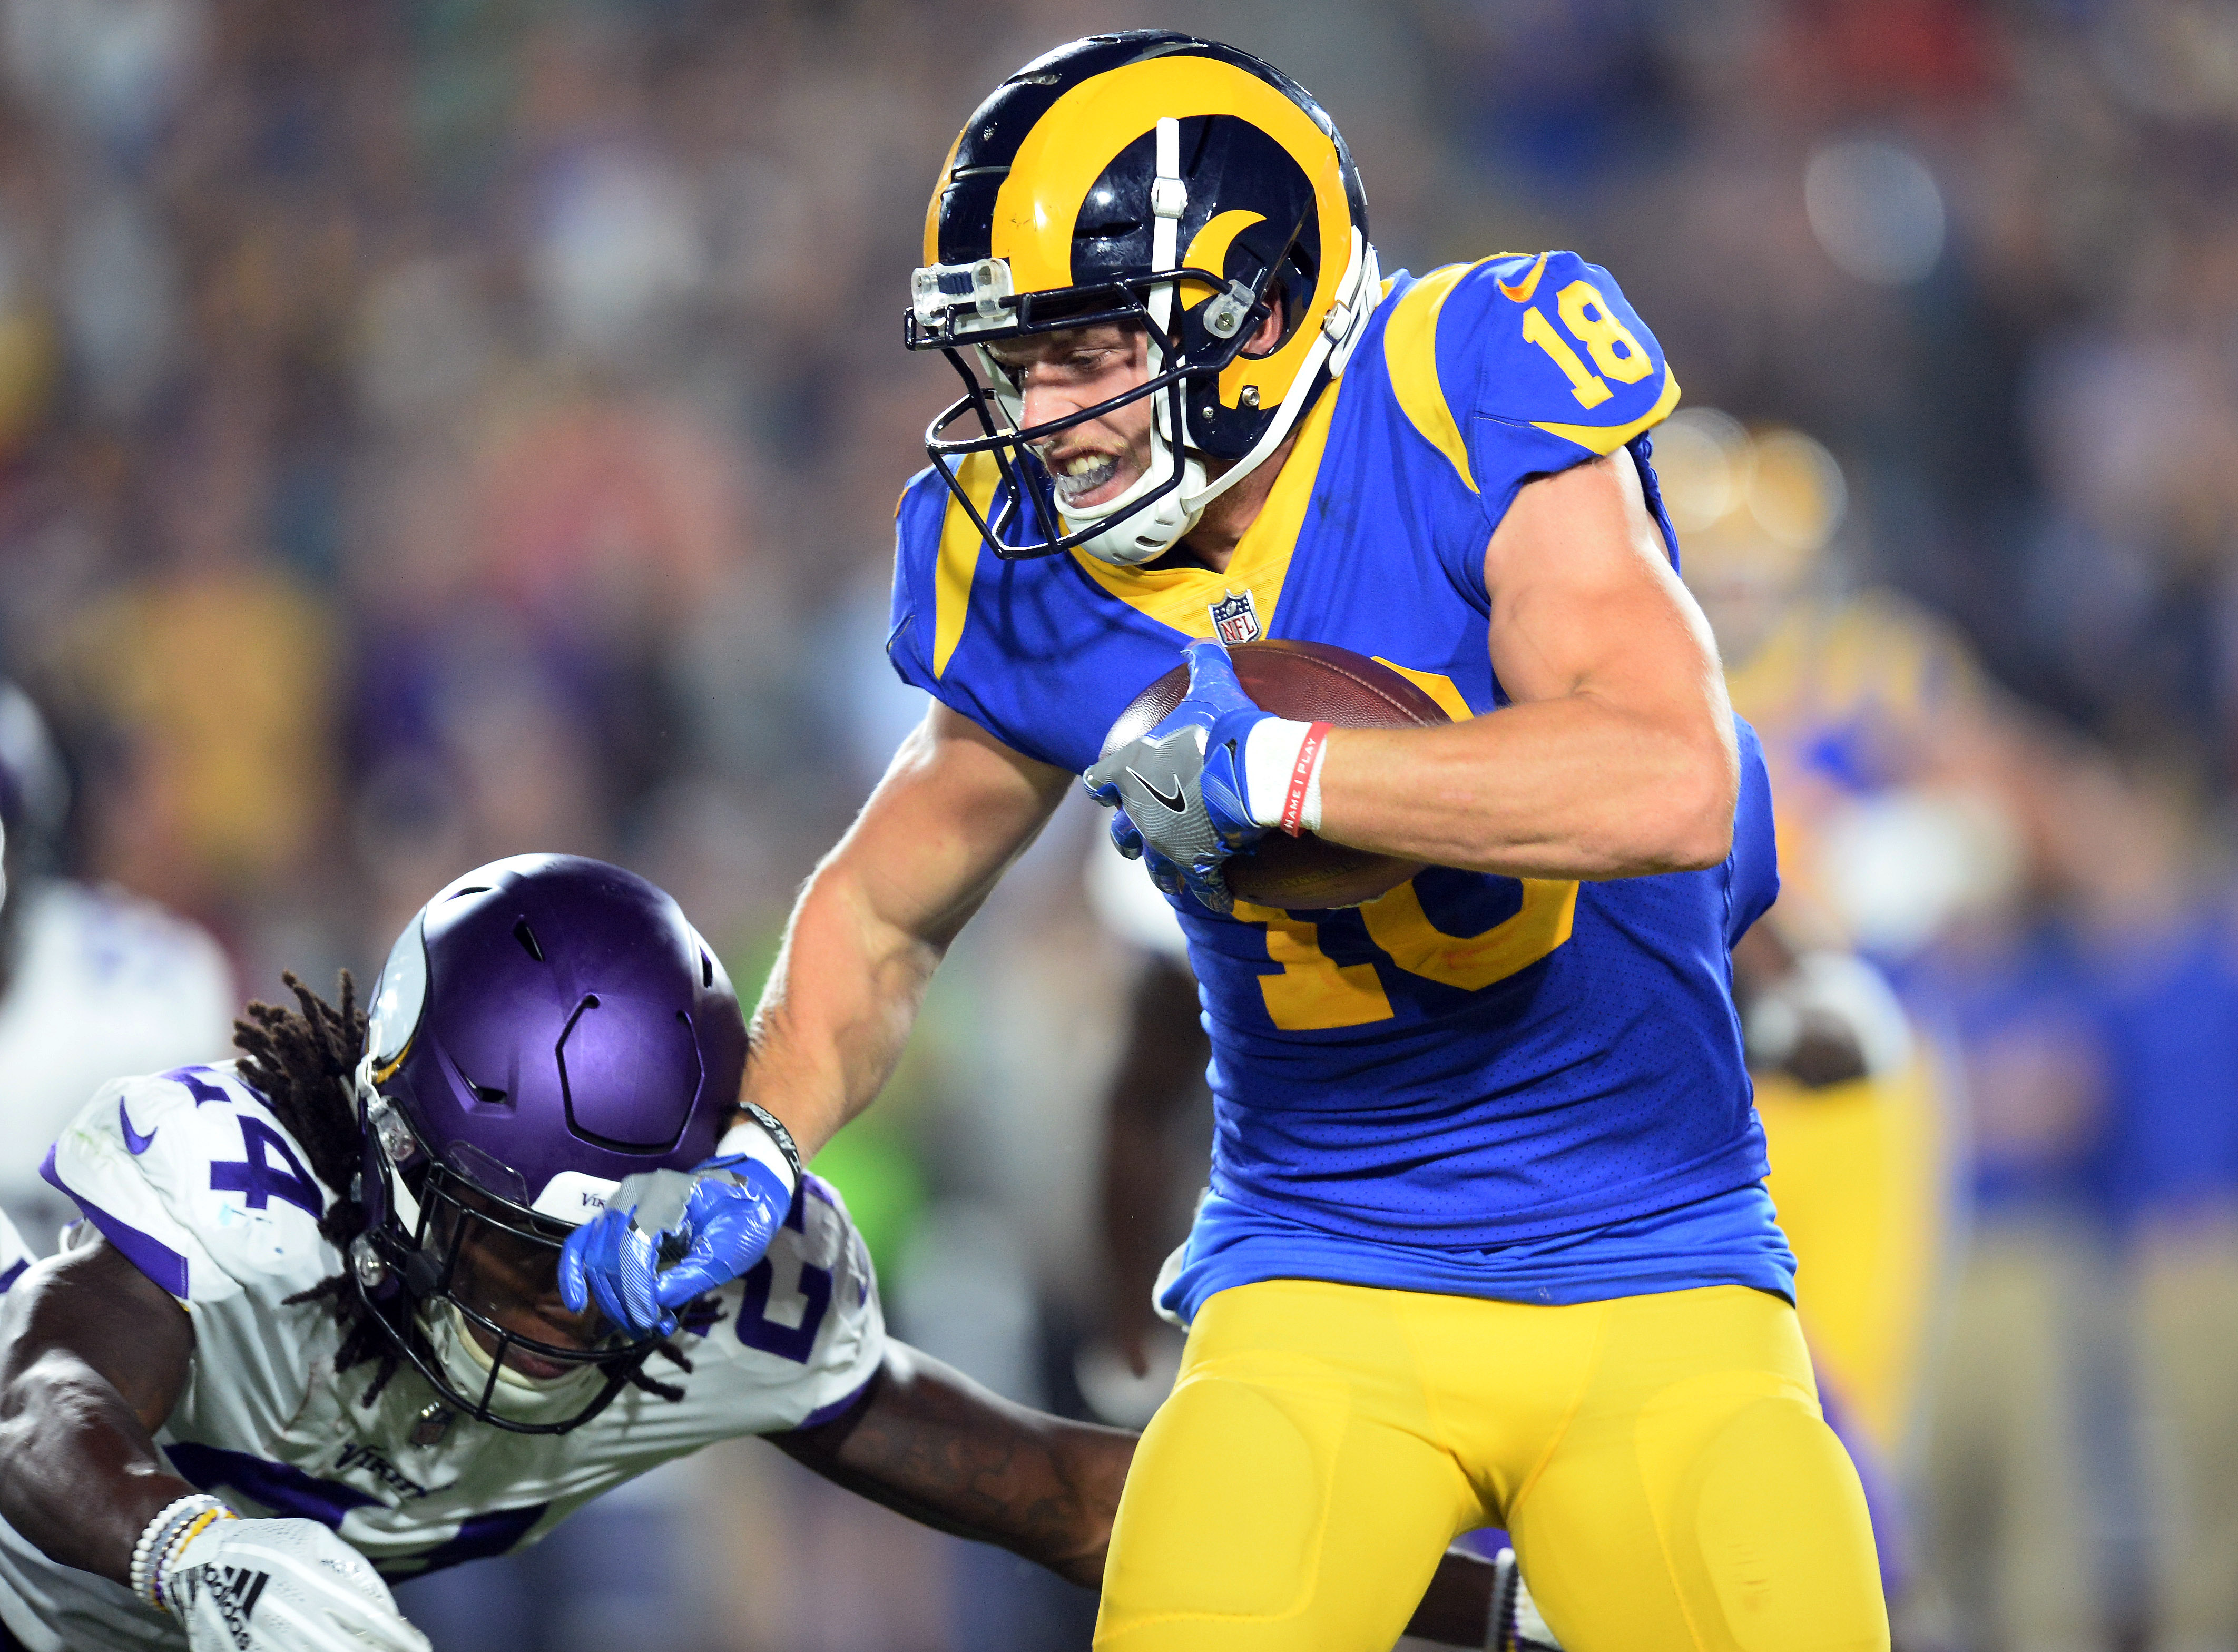 Los Angeles Rams WR Cooper Kupp runs through a tackle attempt from Minnesota Vikings CB Holton Hill, Sep. 27, 2018.